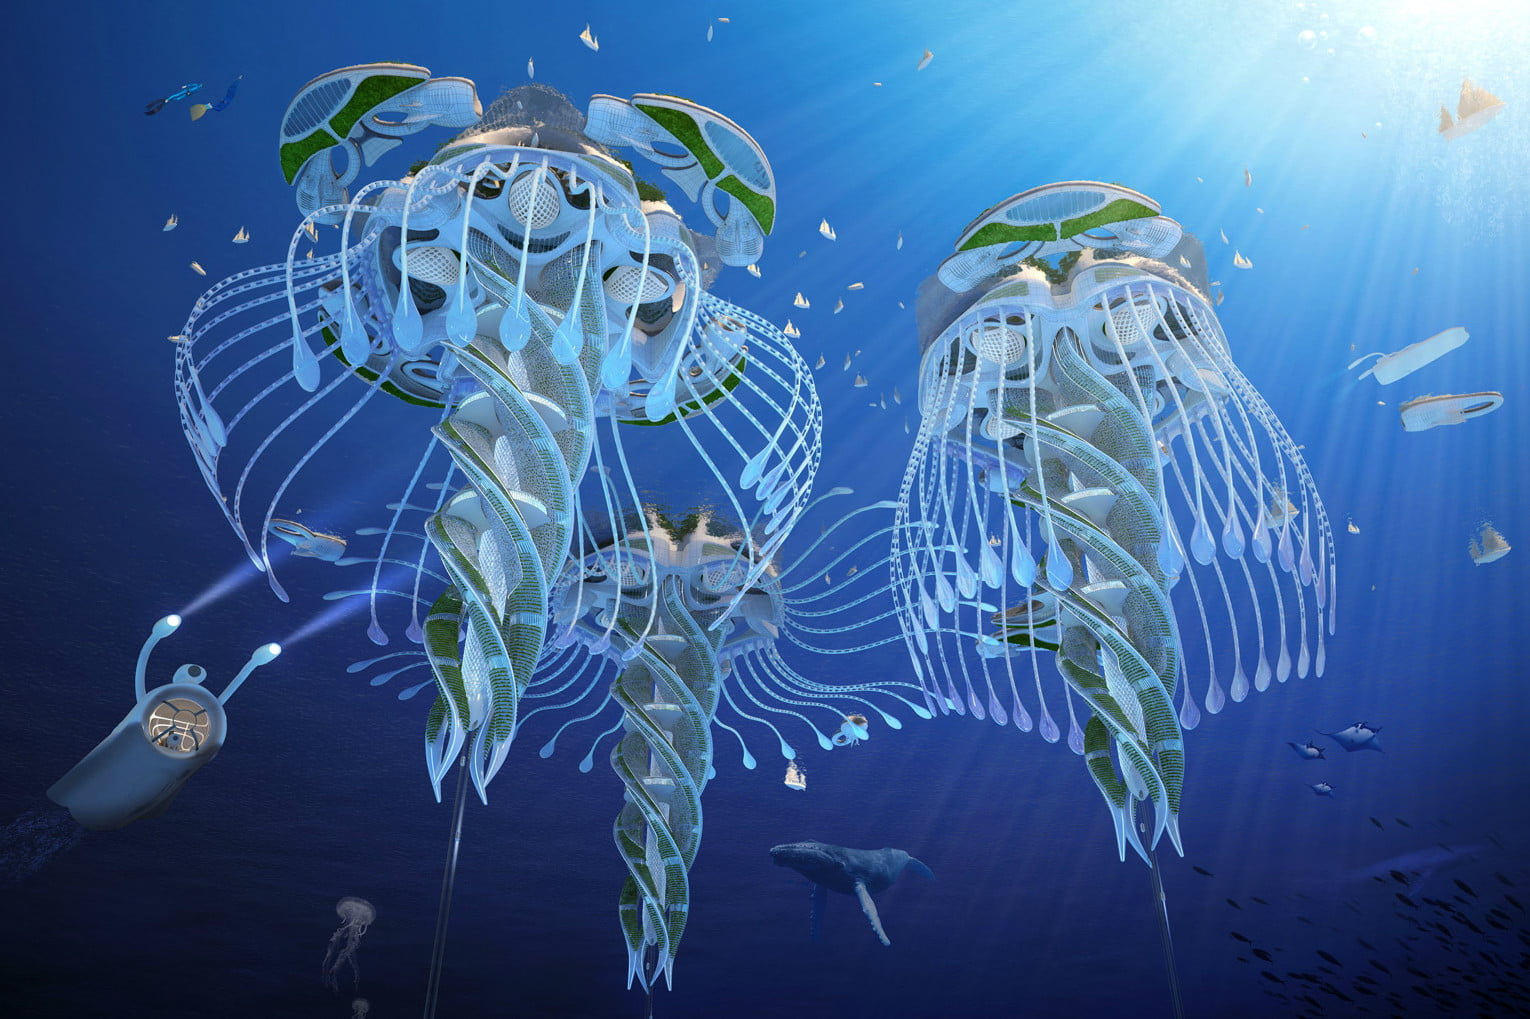 vincent callebaut imagines 3d oceanscrapers made of trash oceanscraper 6